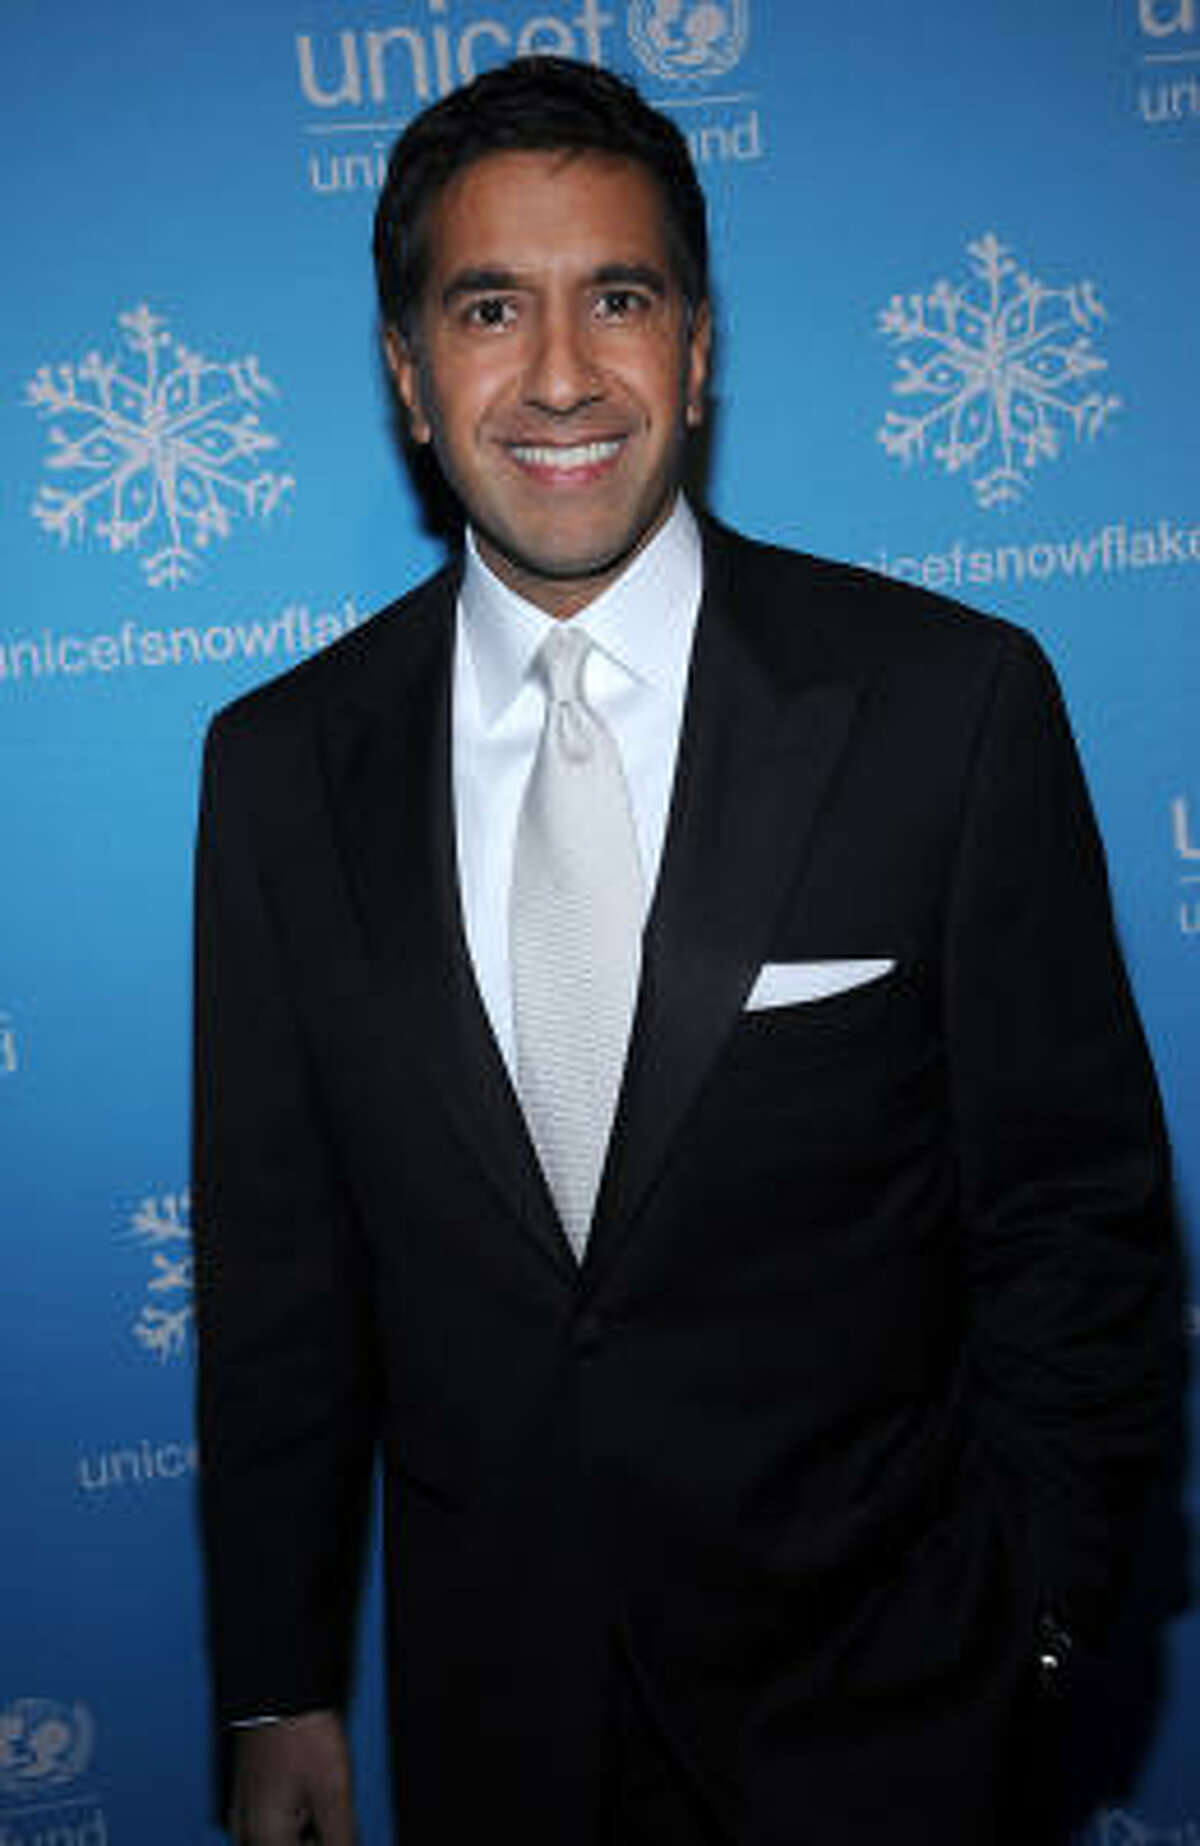 Sanjay Gupta is President-elect Barack Obama's choice for surgeon general.